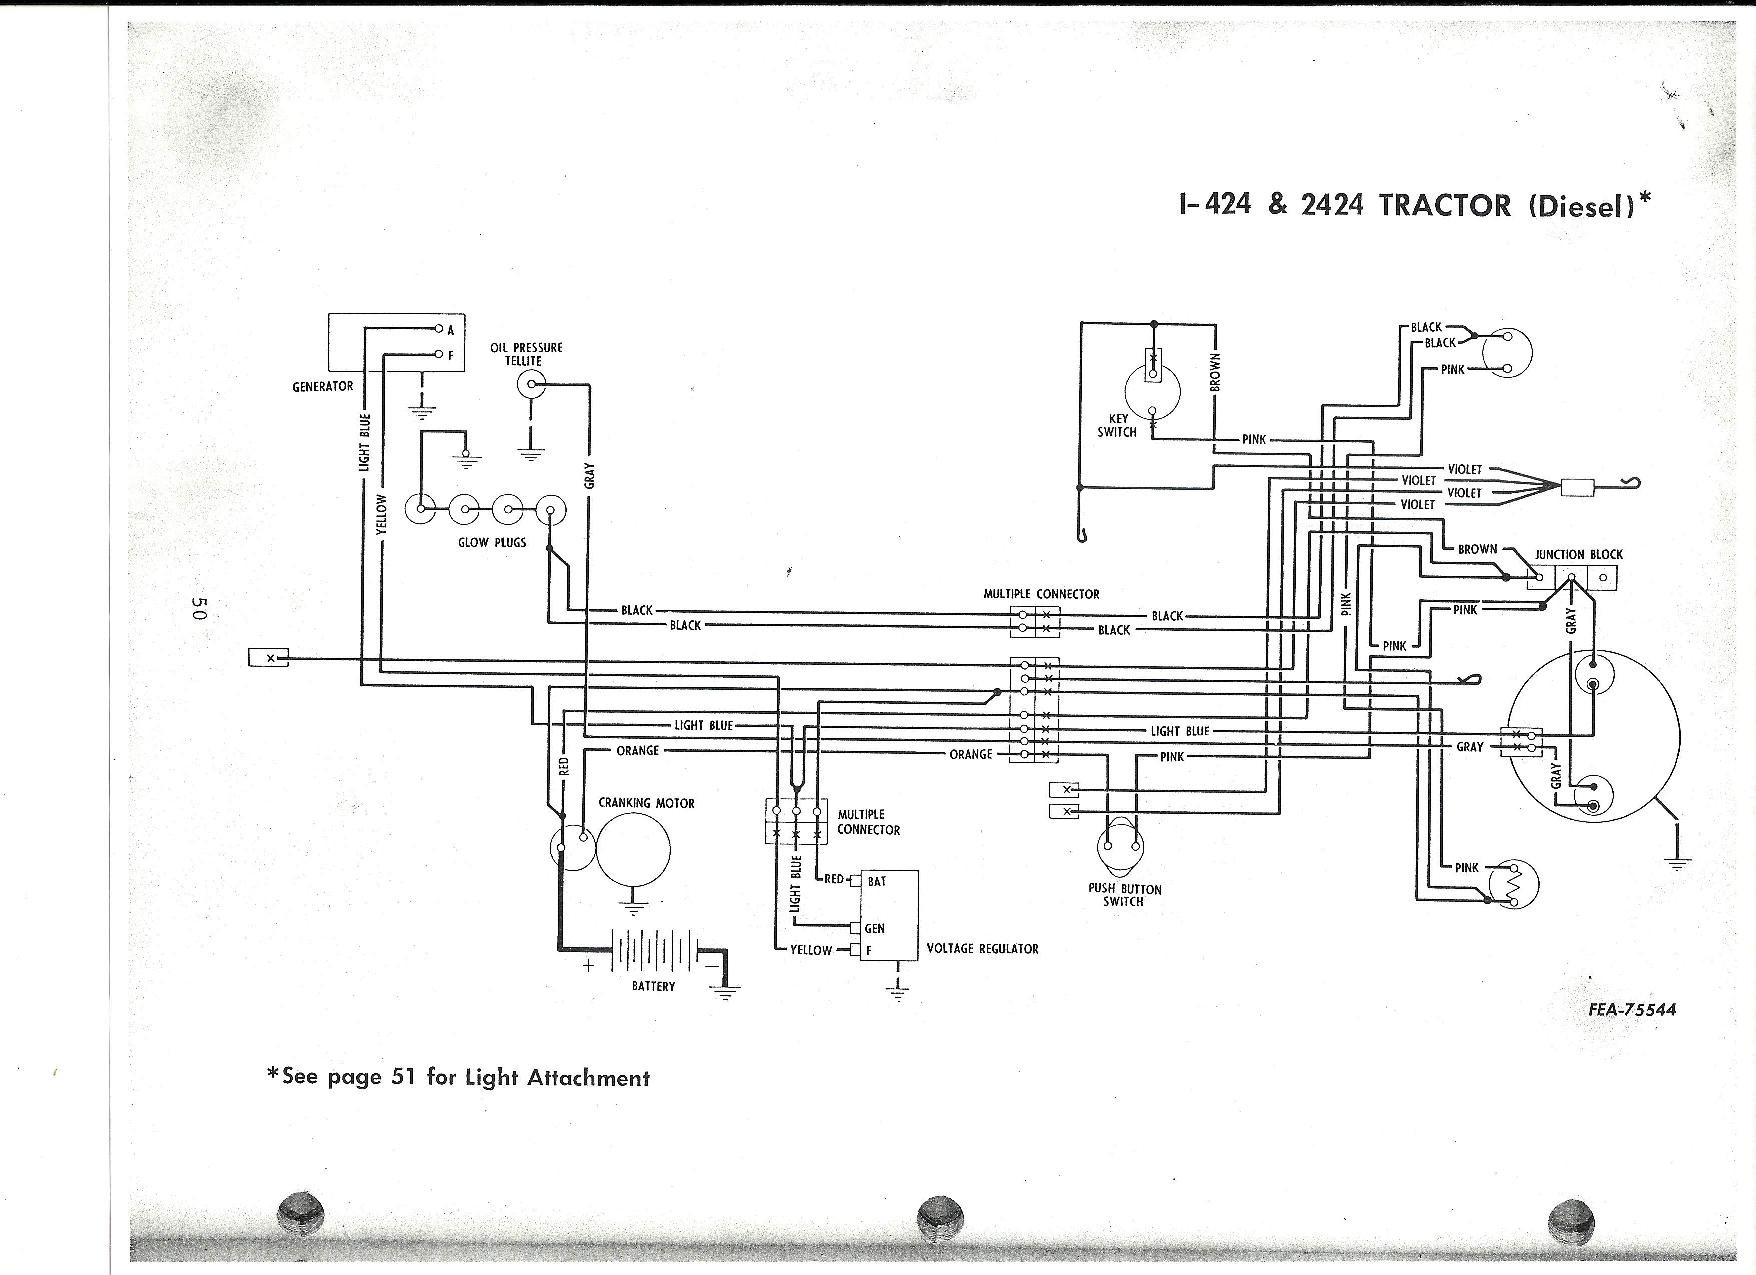 Case 224 Wiring Diagram Library Lawn Mower On 446 Tractor Ignition Todayscase Simple Wirings Kubota